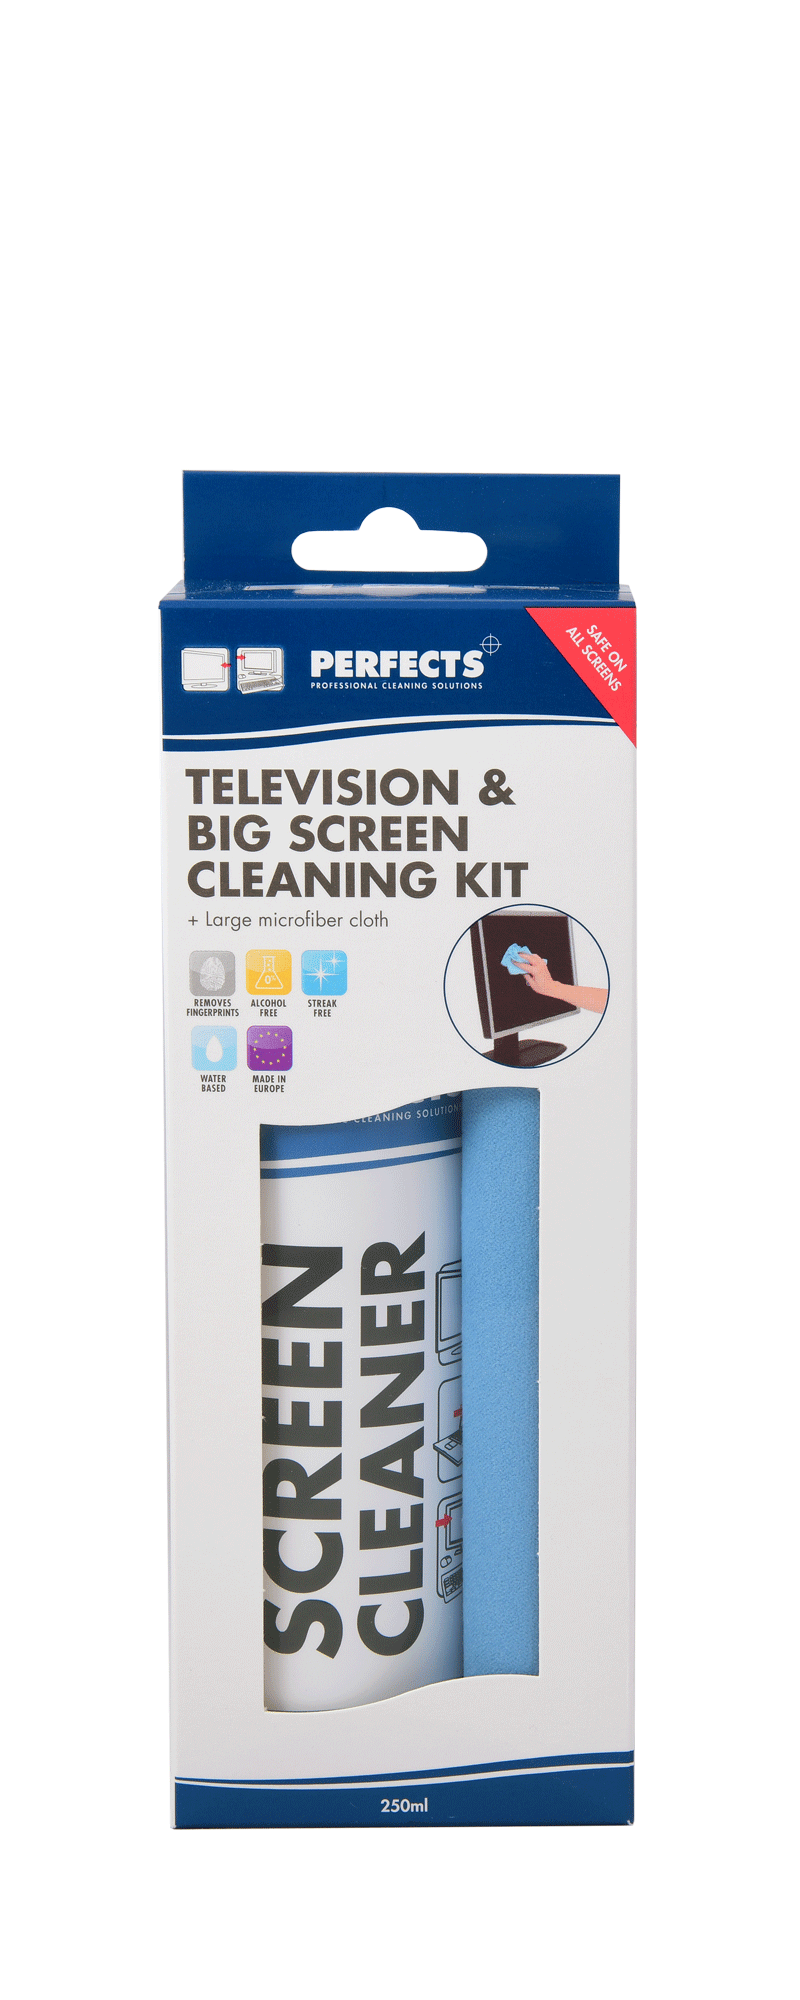 Television & Big Screen Cleaning Kit